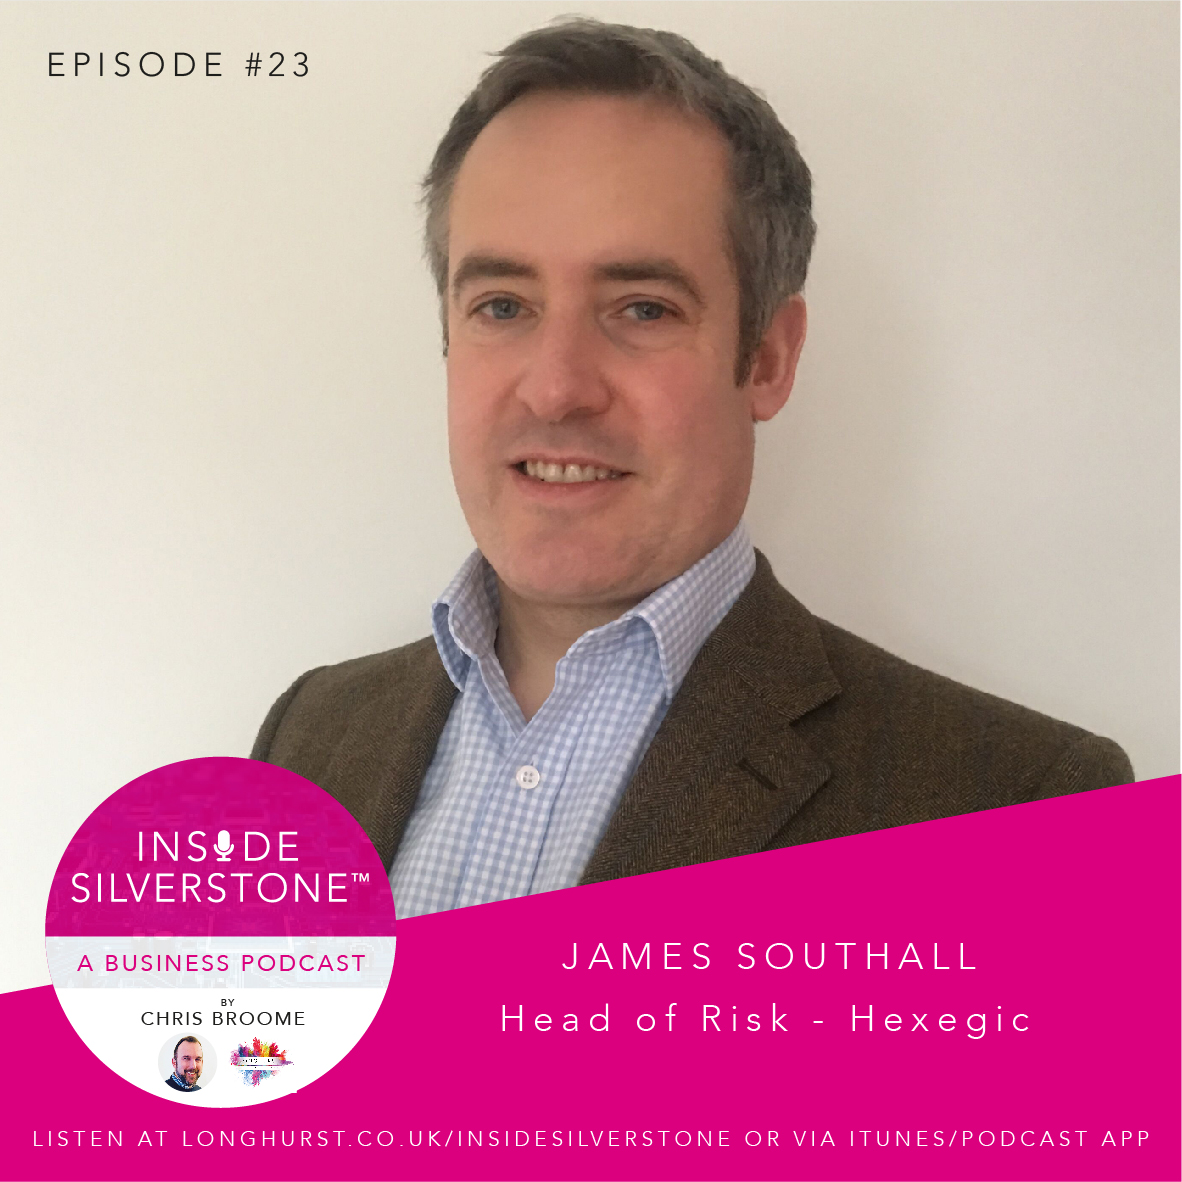 James Southall - Head of Risk at Hexegic